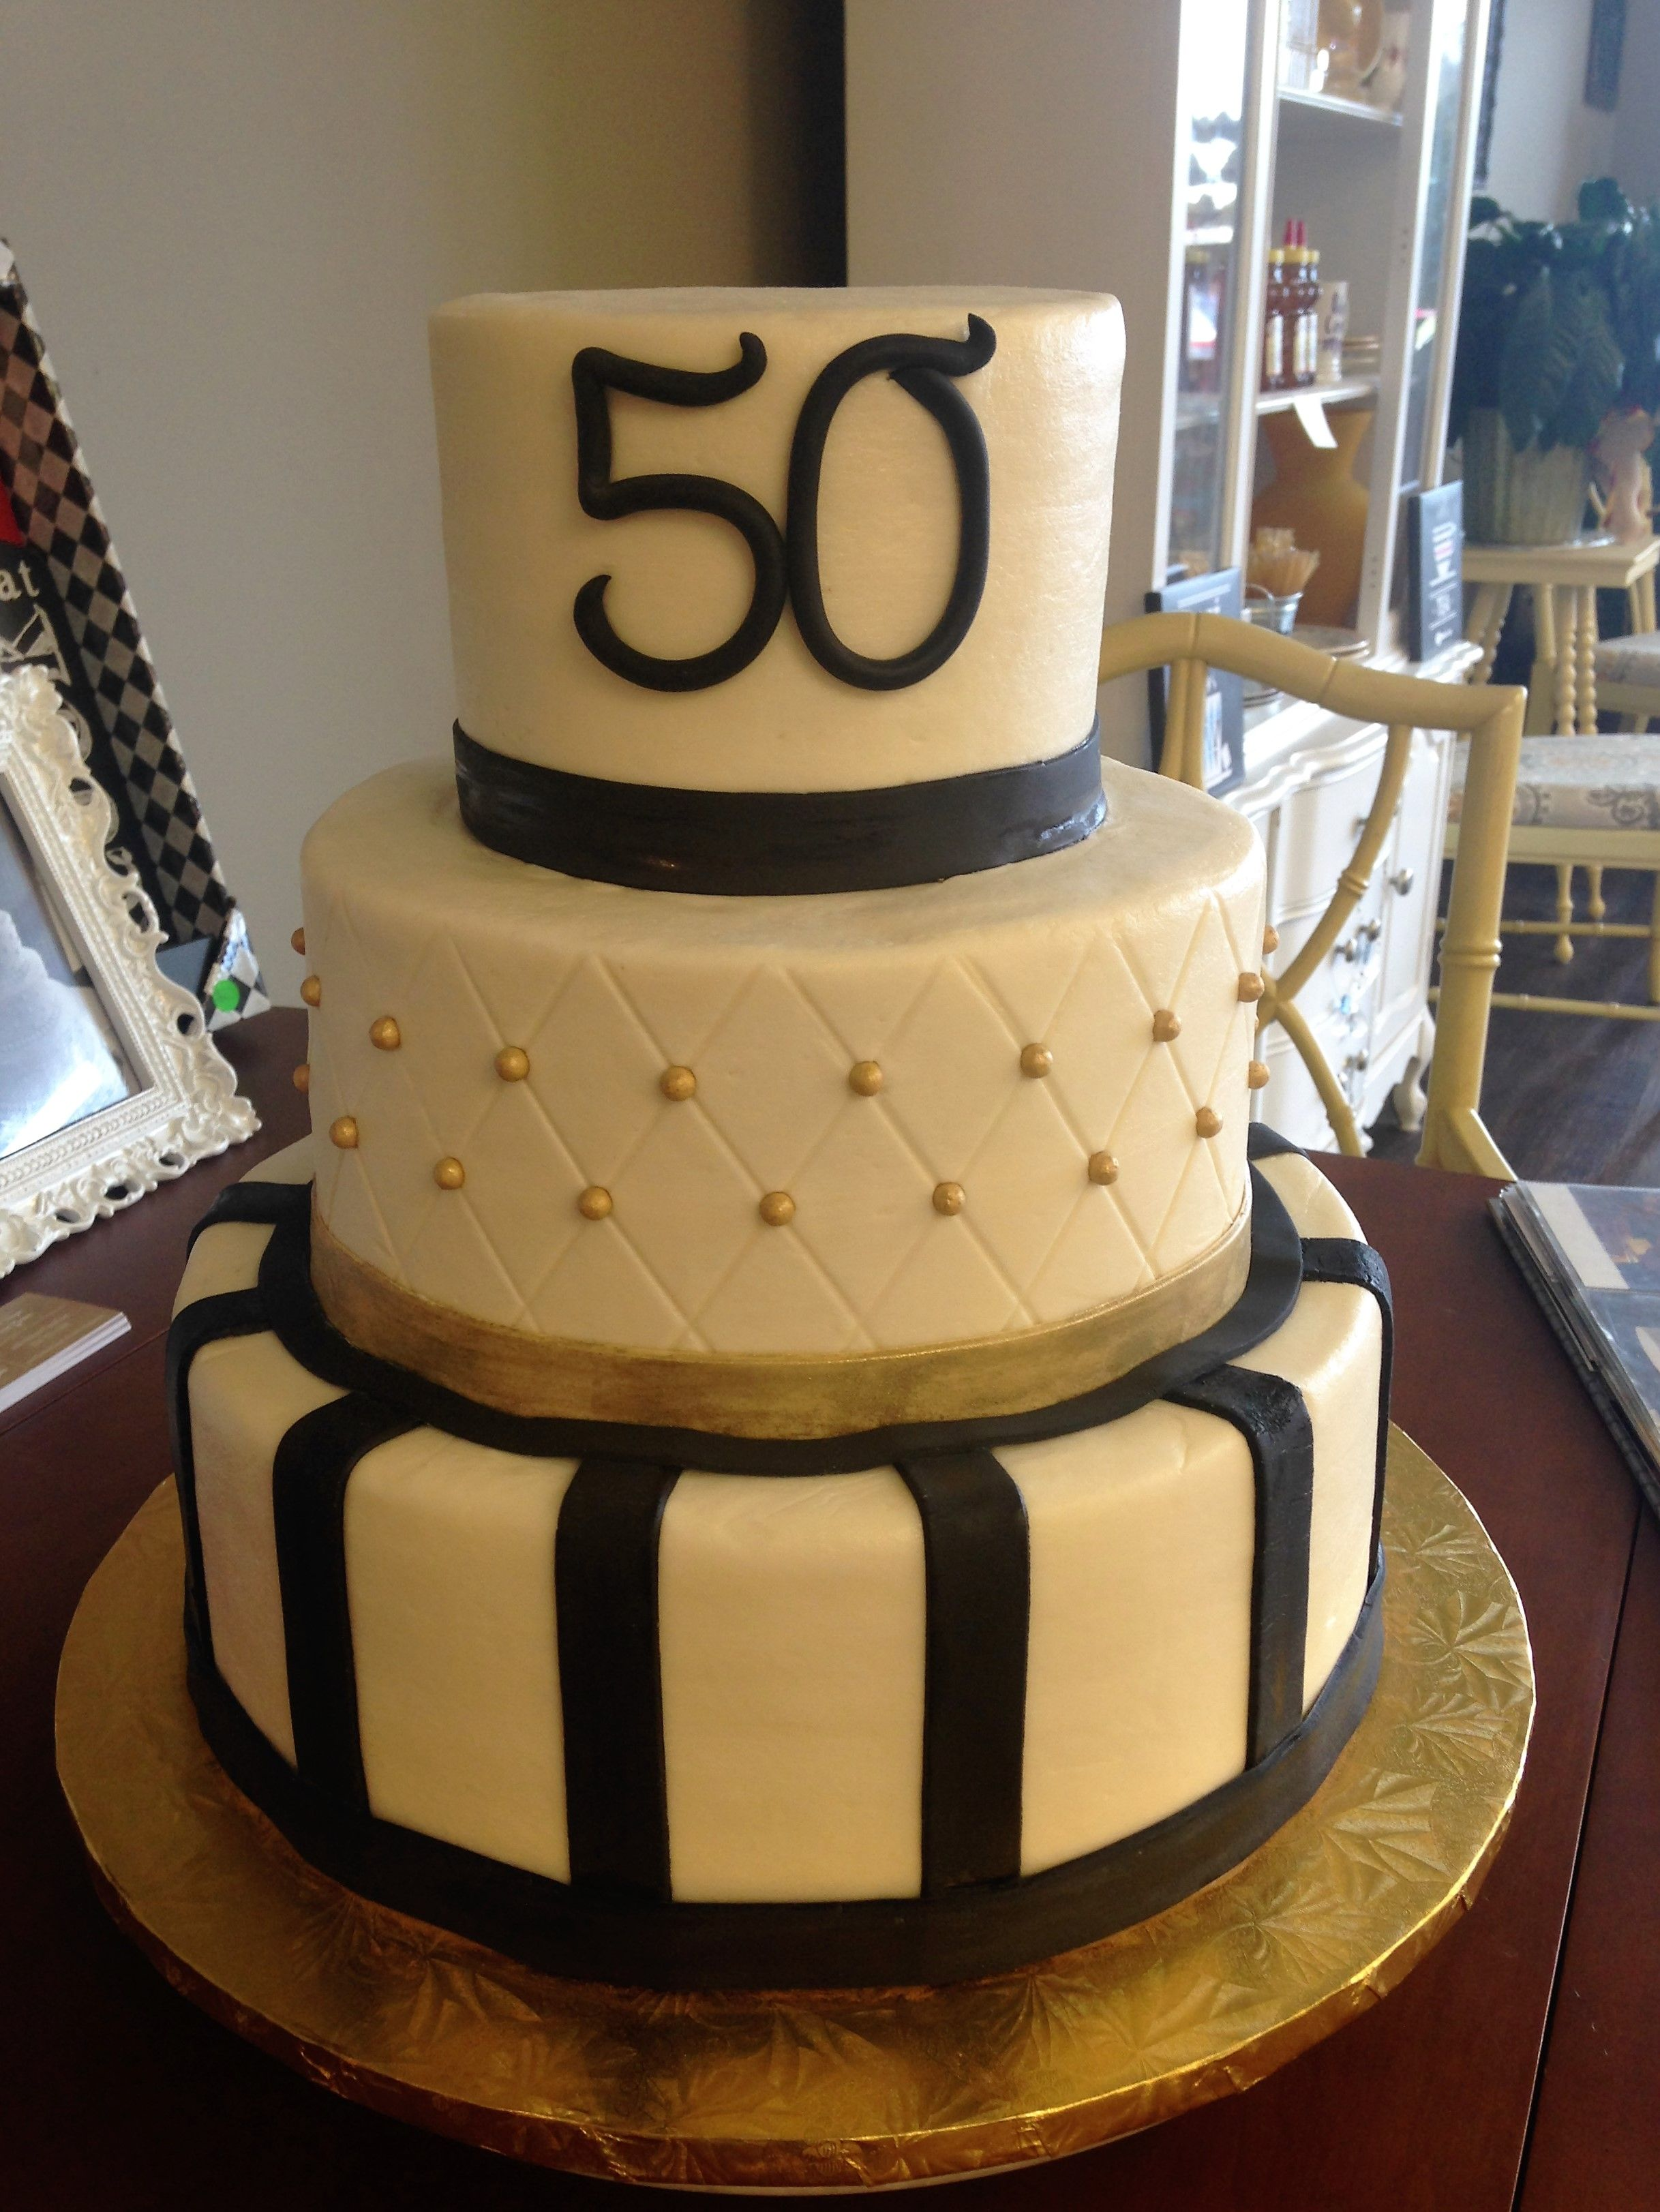 Peachy Gold And Black 50Th Birthday Cake Cheap Birthday Cakes Birthday Funny Birthday Cards Online Barepcheapnameinfo